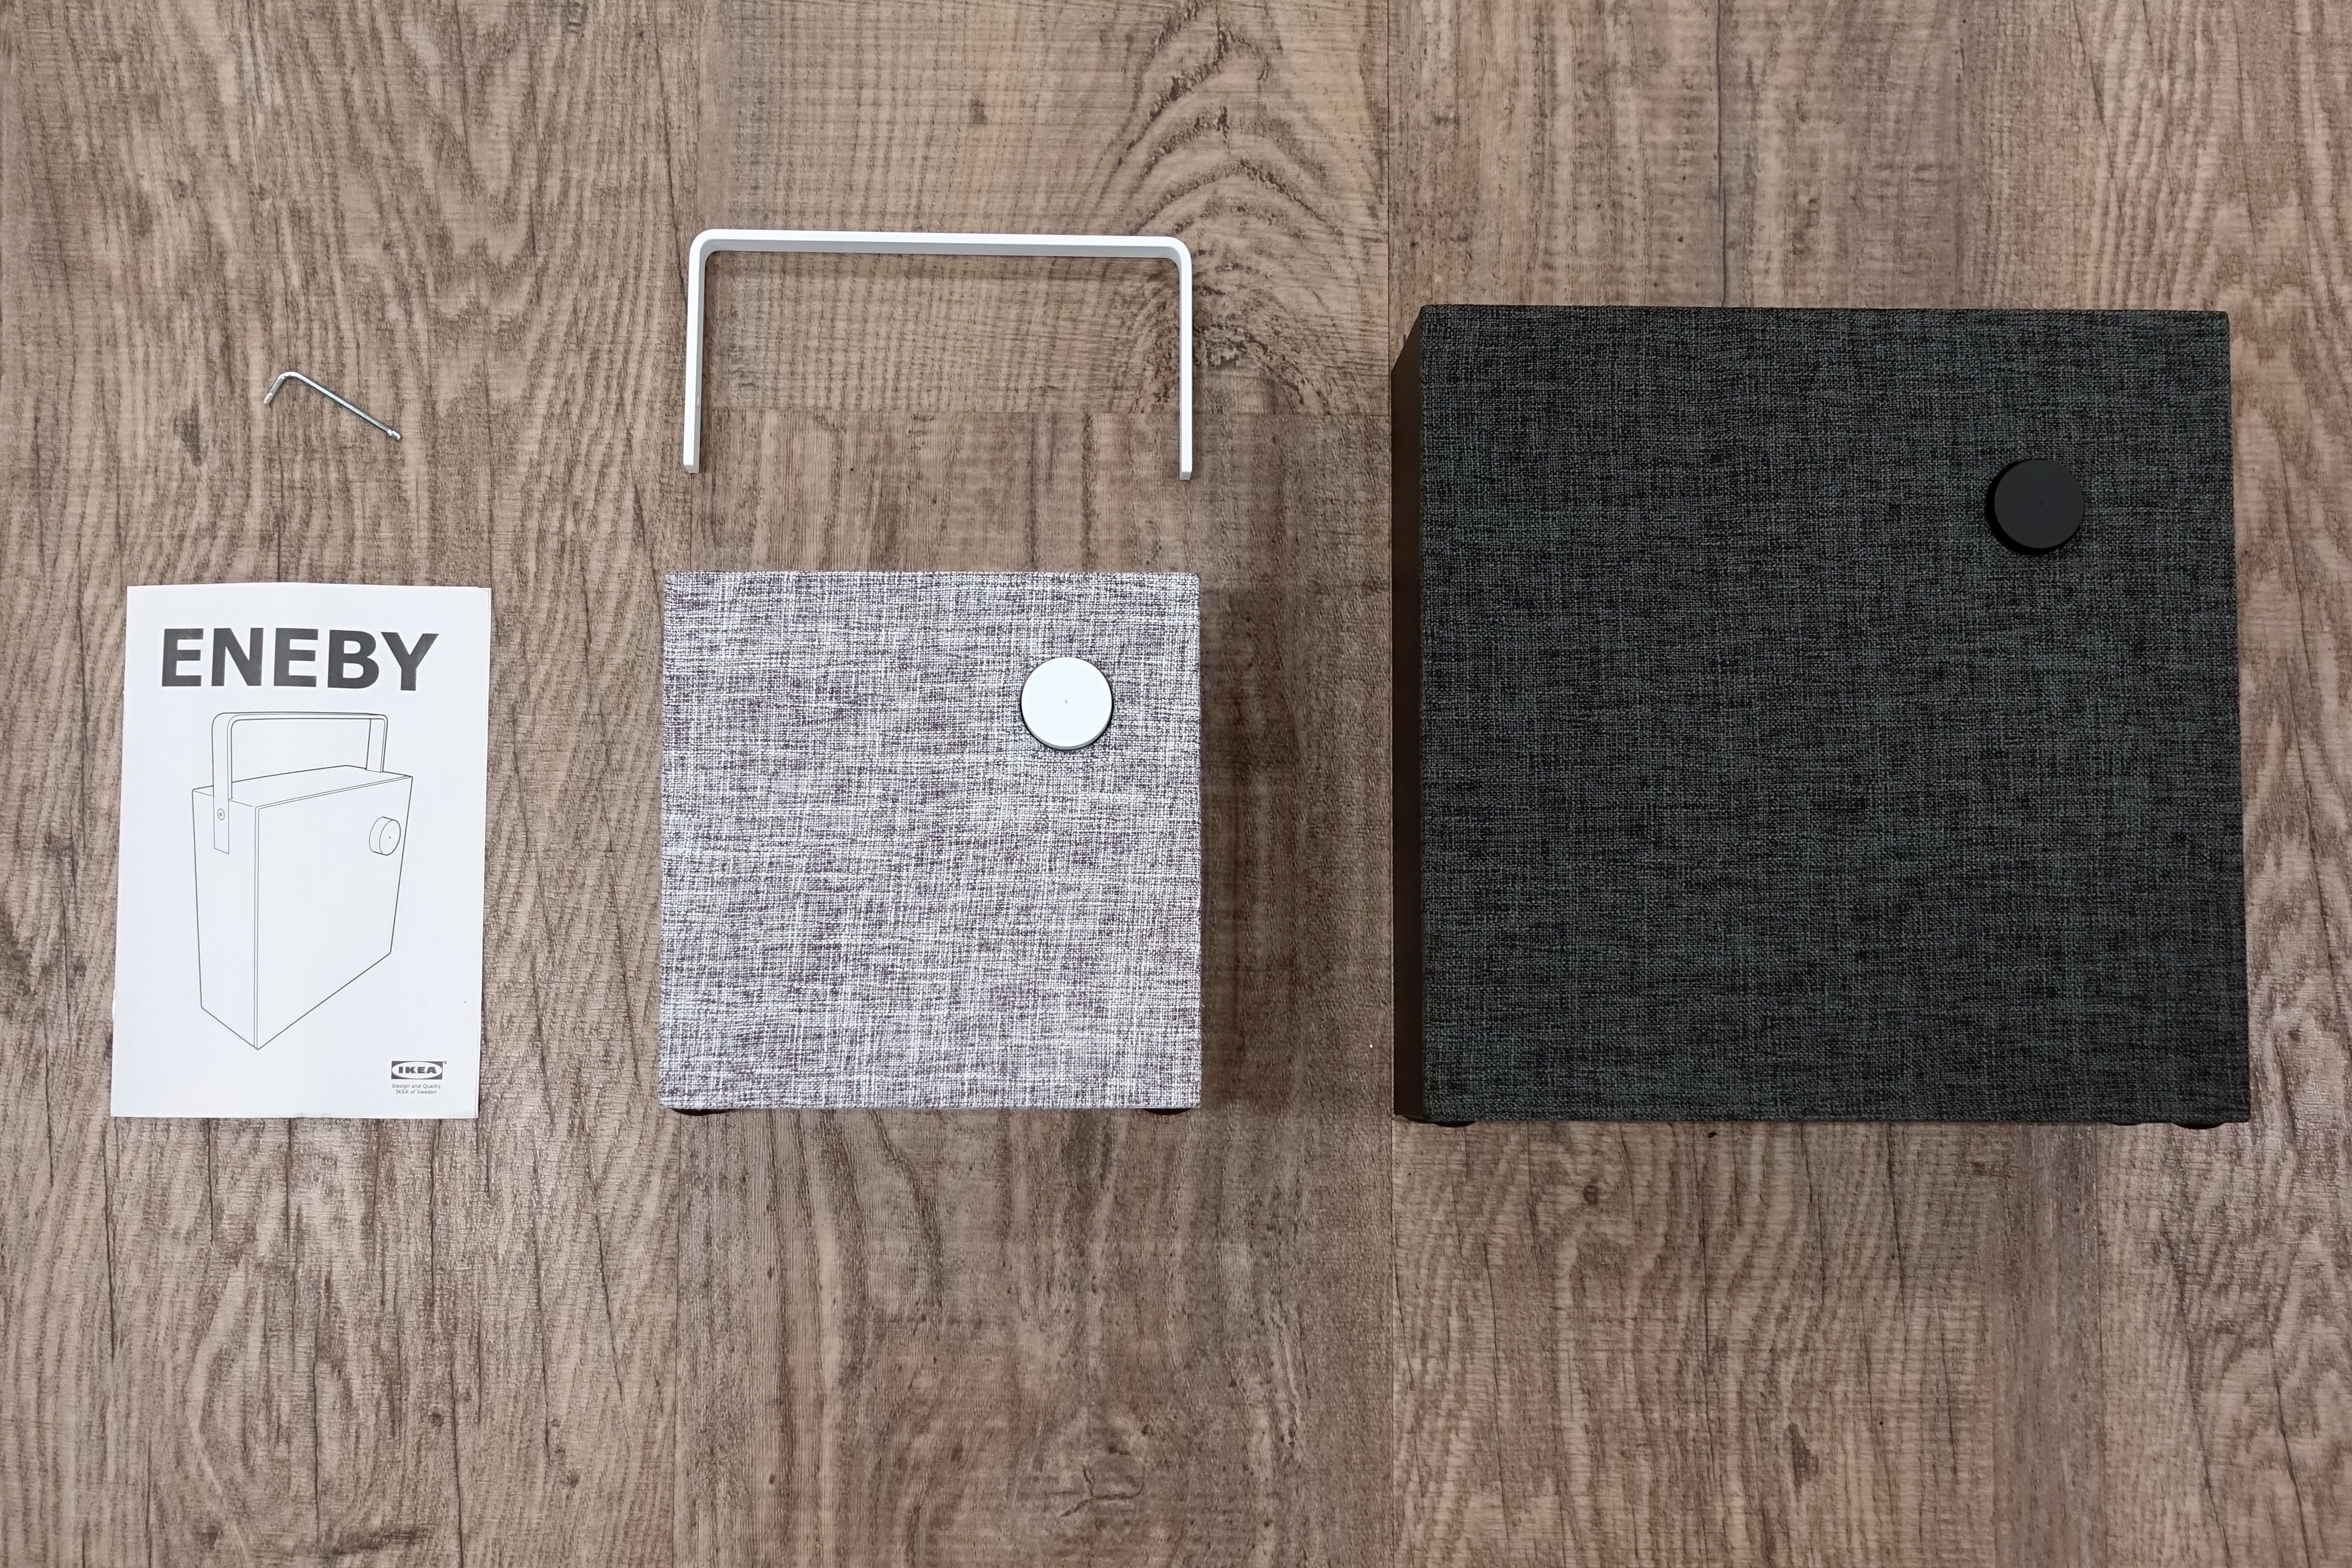 Ikea Eneby Review Can The Furniture People Make Good Speakers